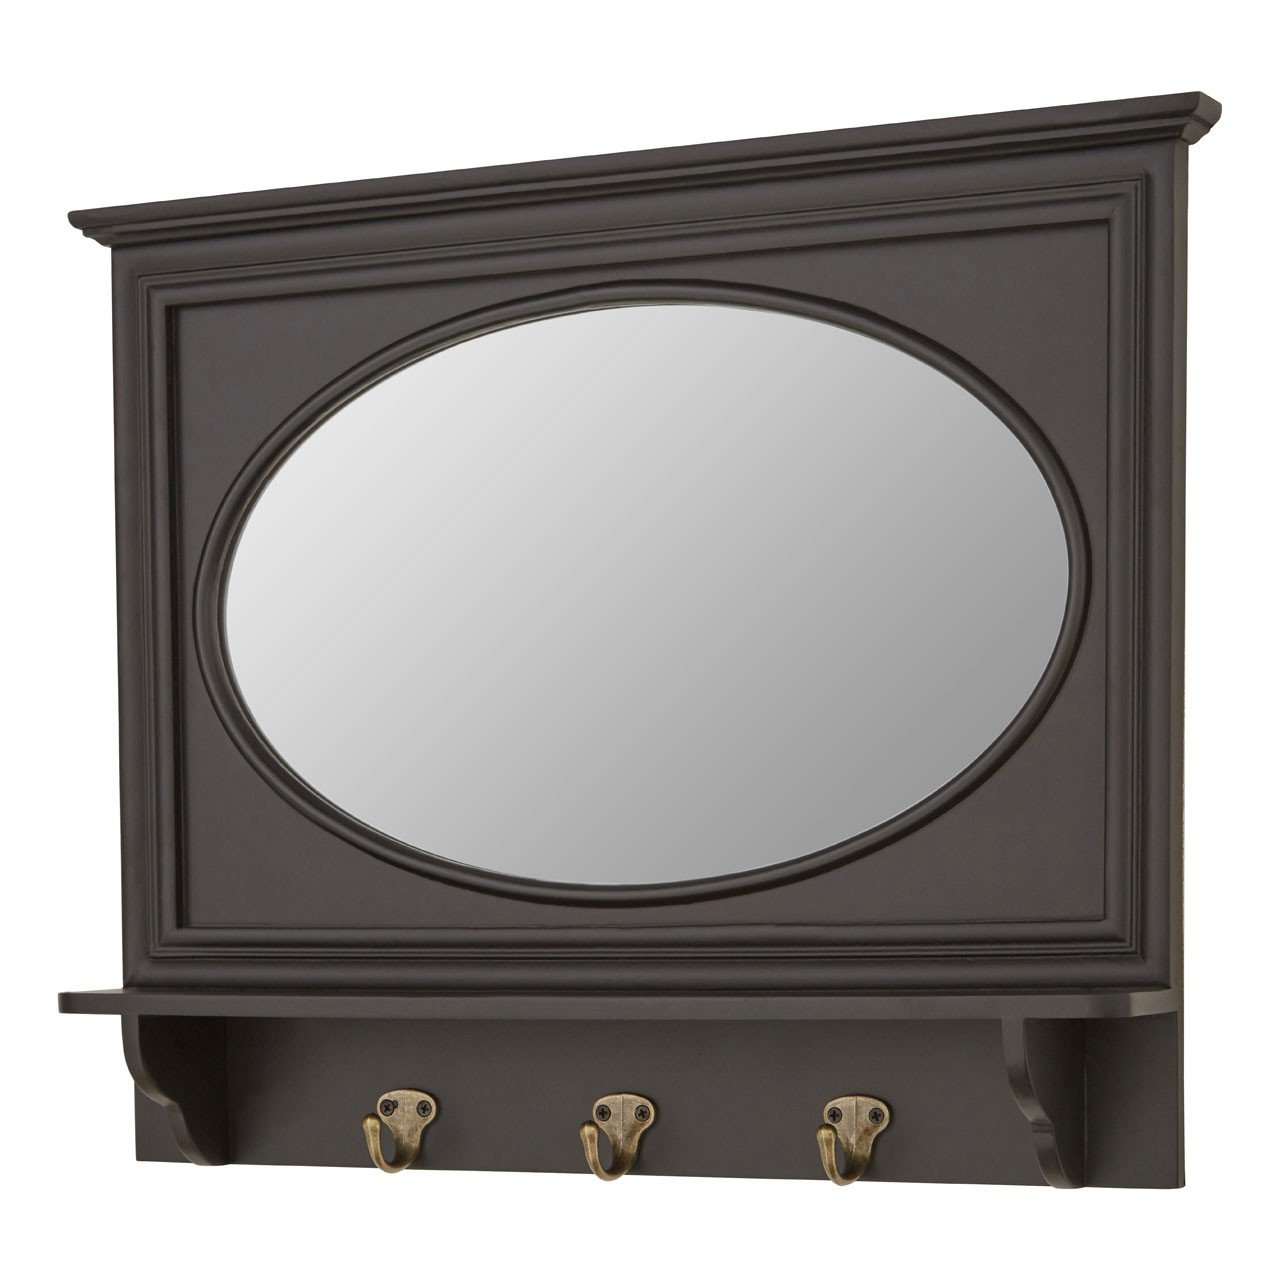 Stylish And Functional Whitley Wall Mirror Three Hooks For Hanging Within 2019 Wall Mirror With Coat Hooks (View 10 of 20)